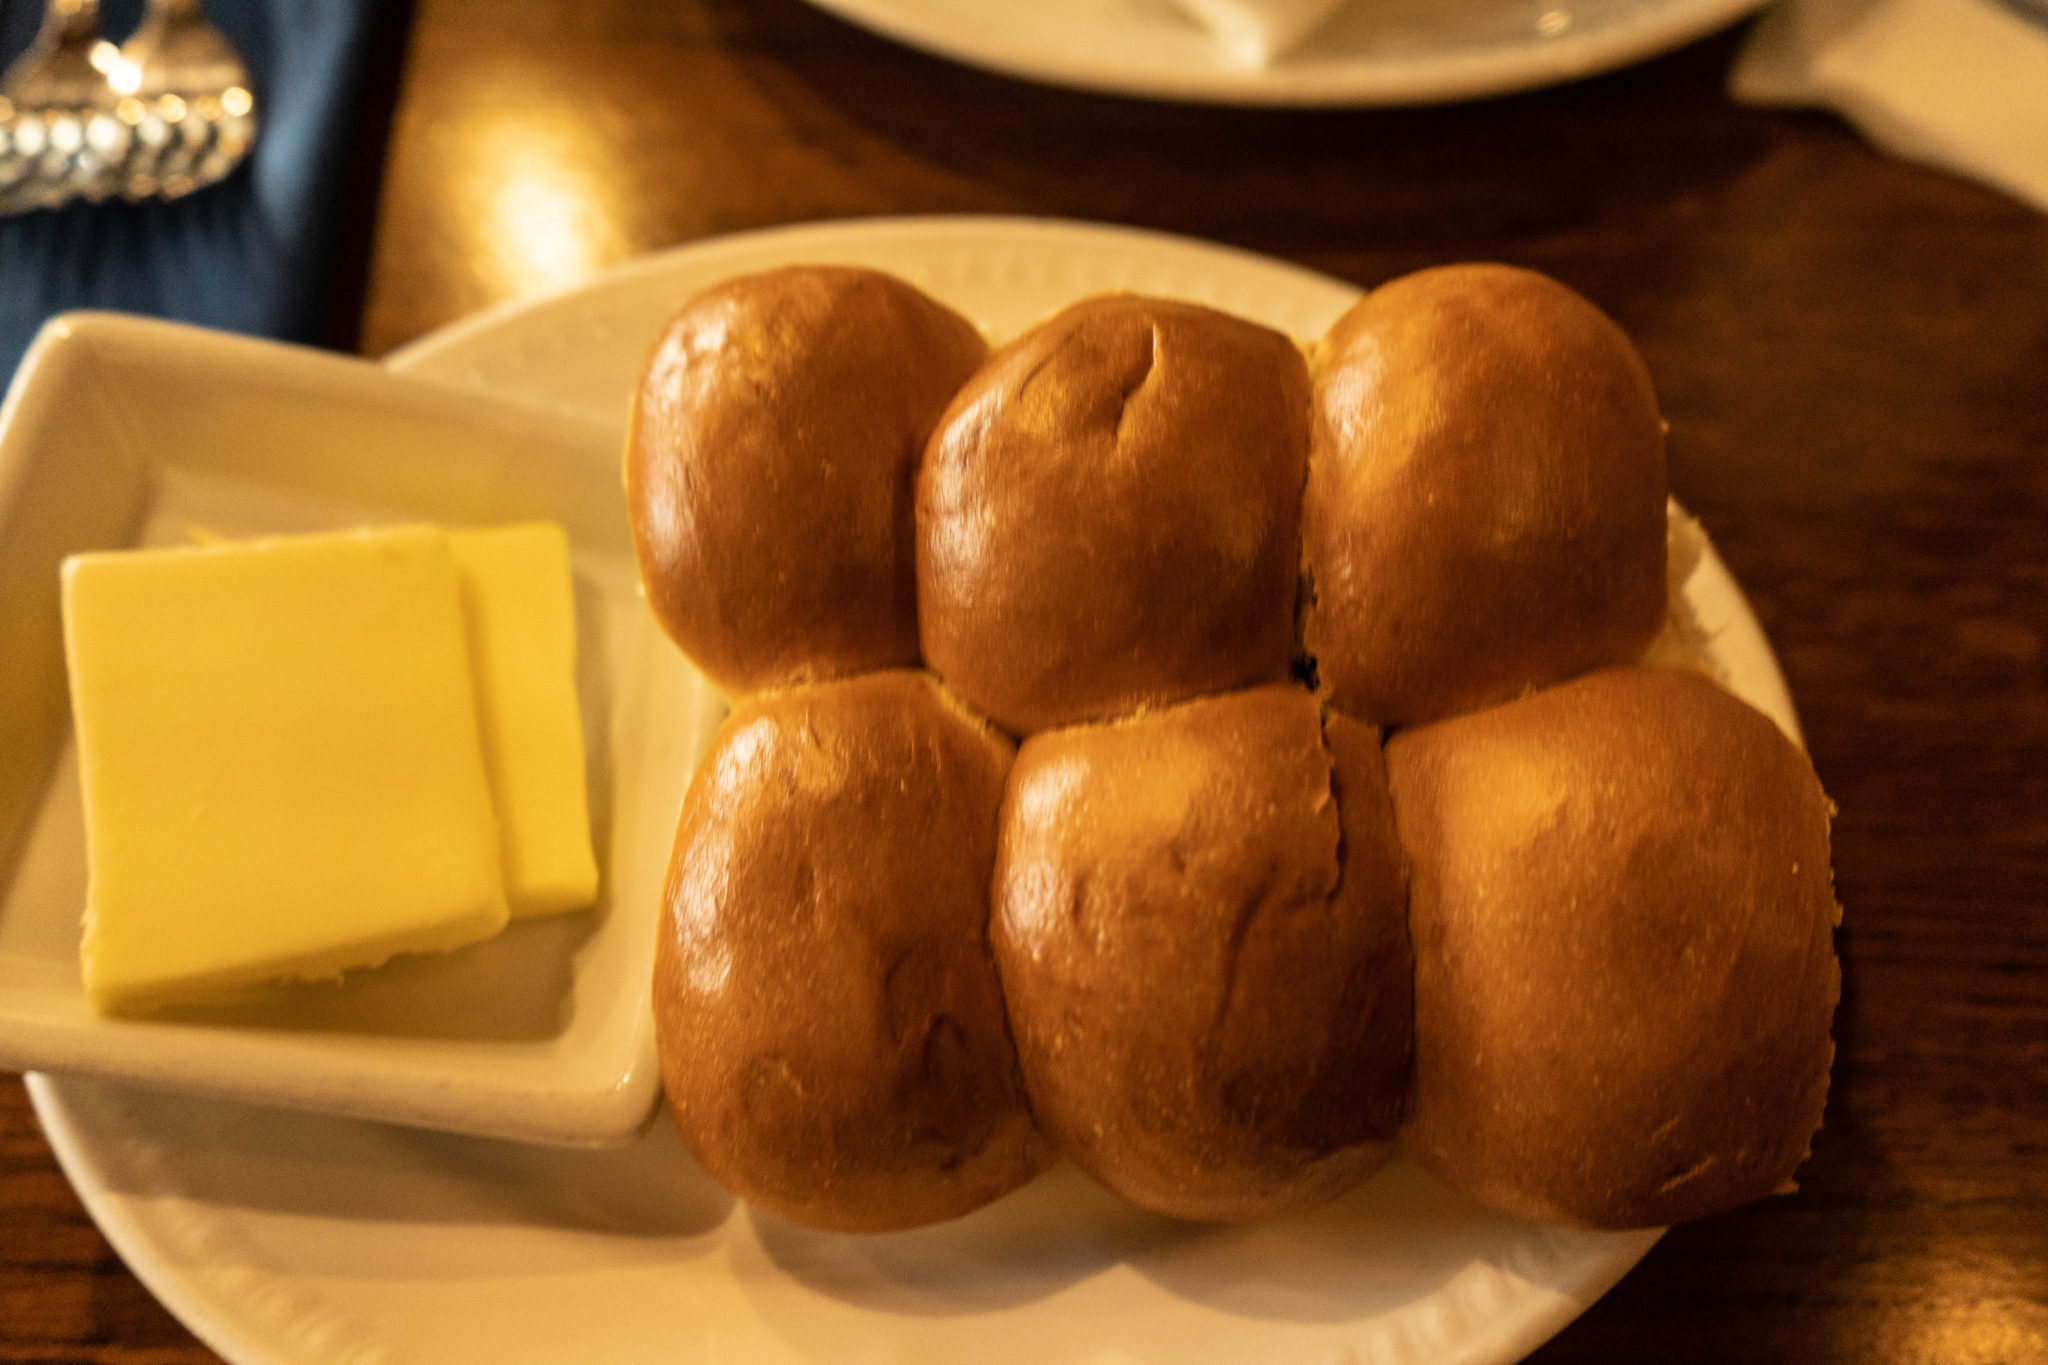 Dinner Bread Rolls and Butter from Liberty Tree Tavern in Disney World